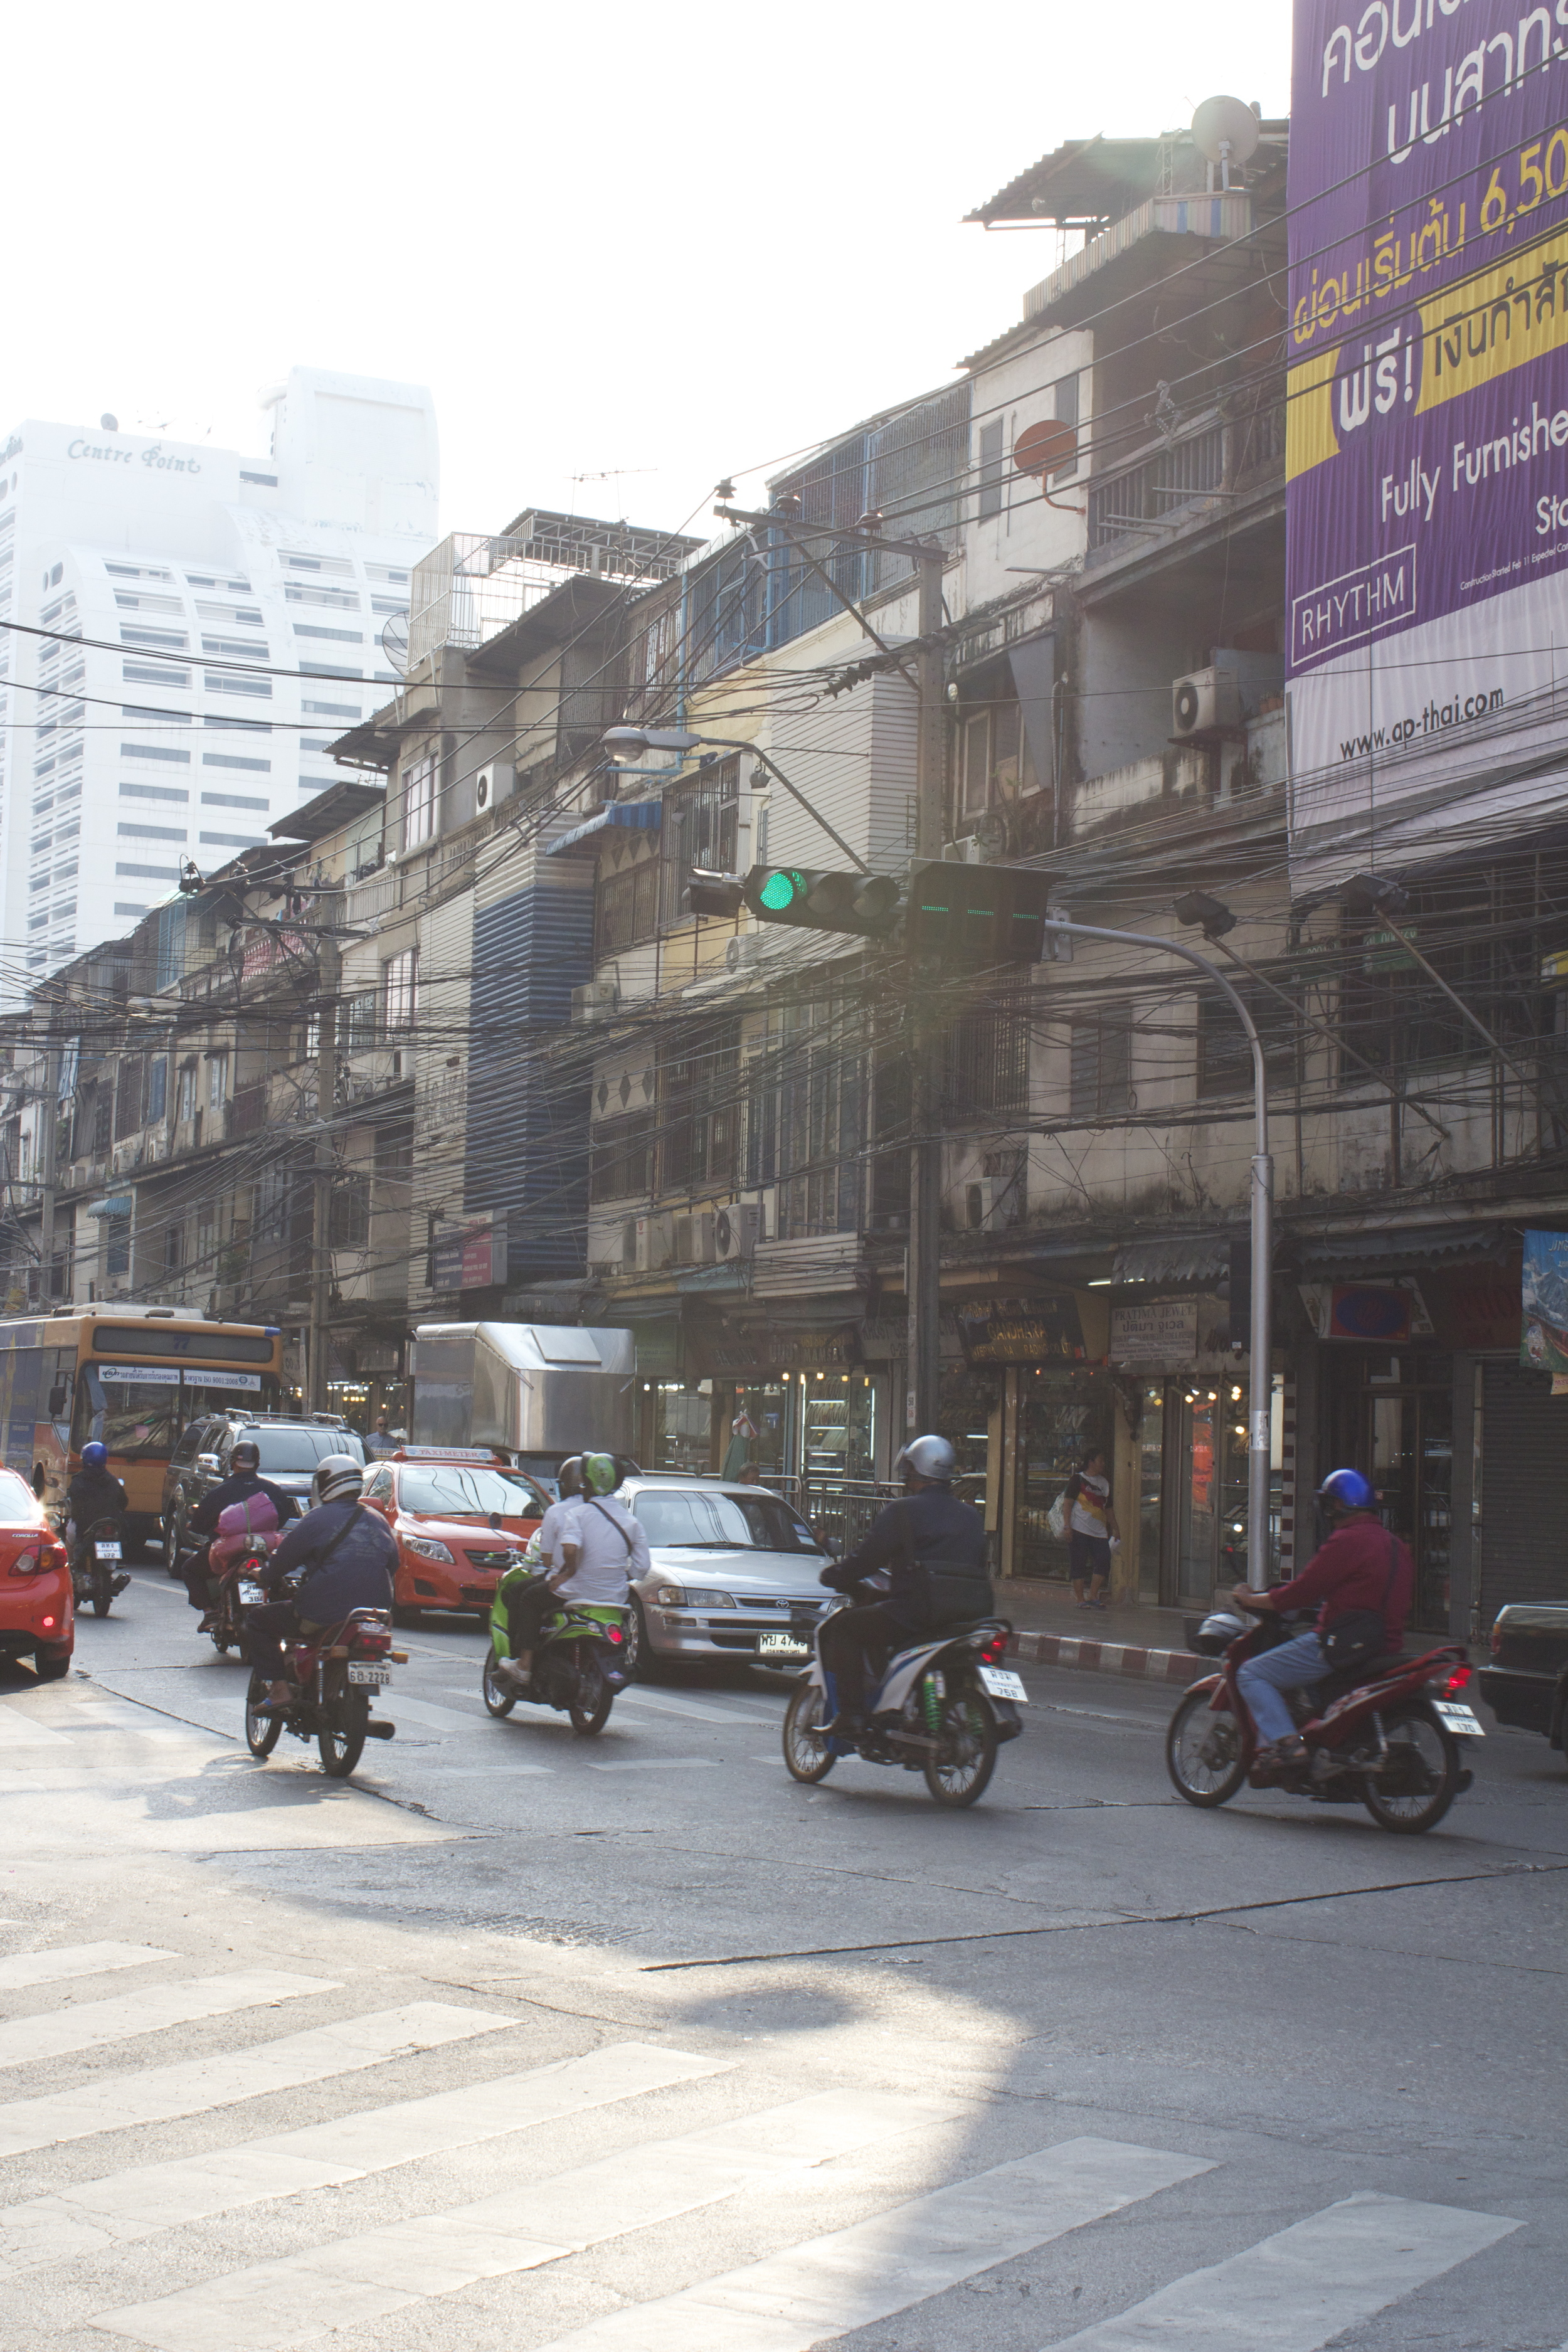 The real Bangkok, just one street away from the hotel!